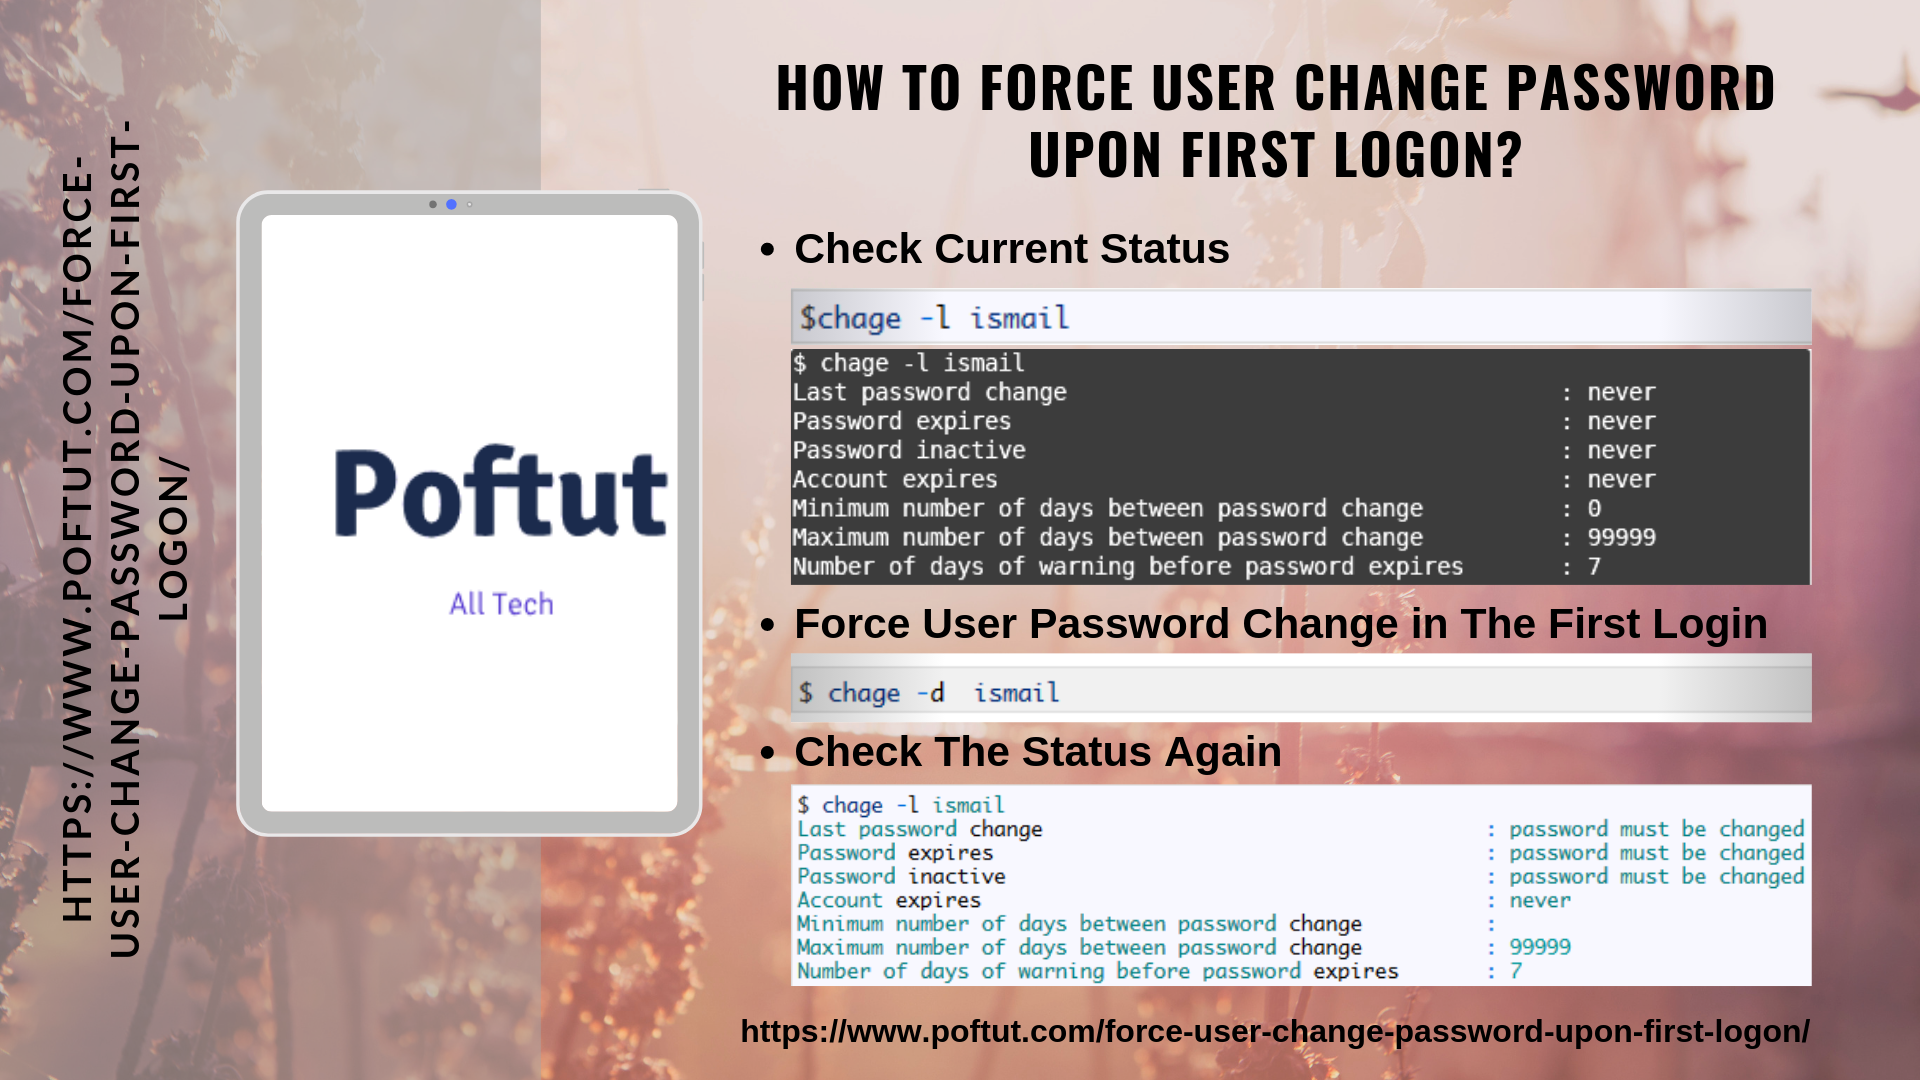 How To Force User Change Password Upon First Logon? Infografic